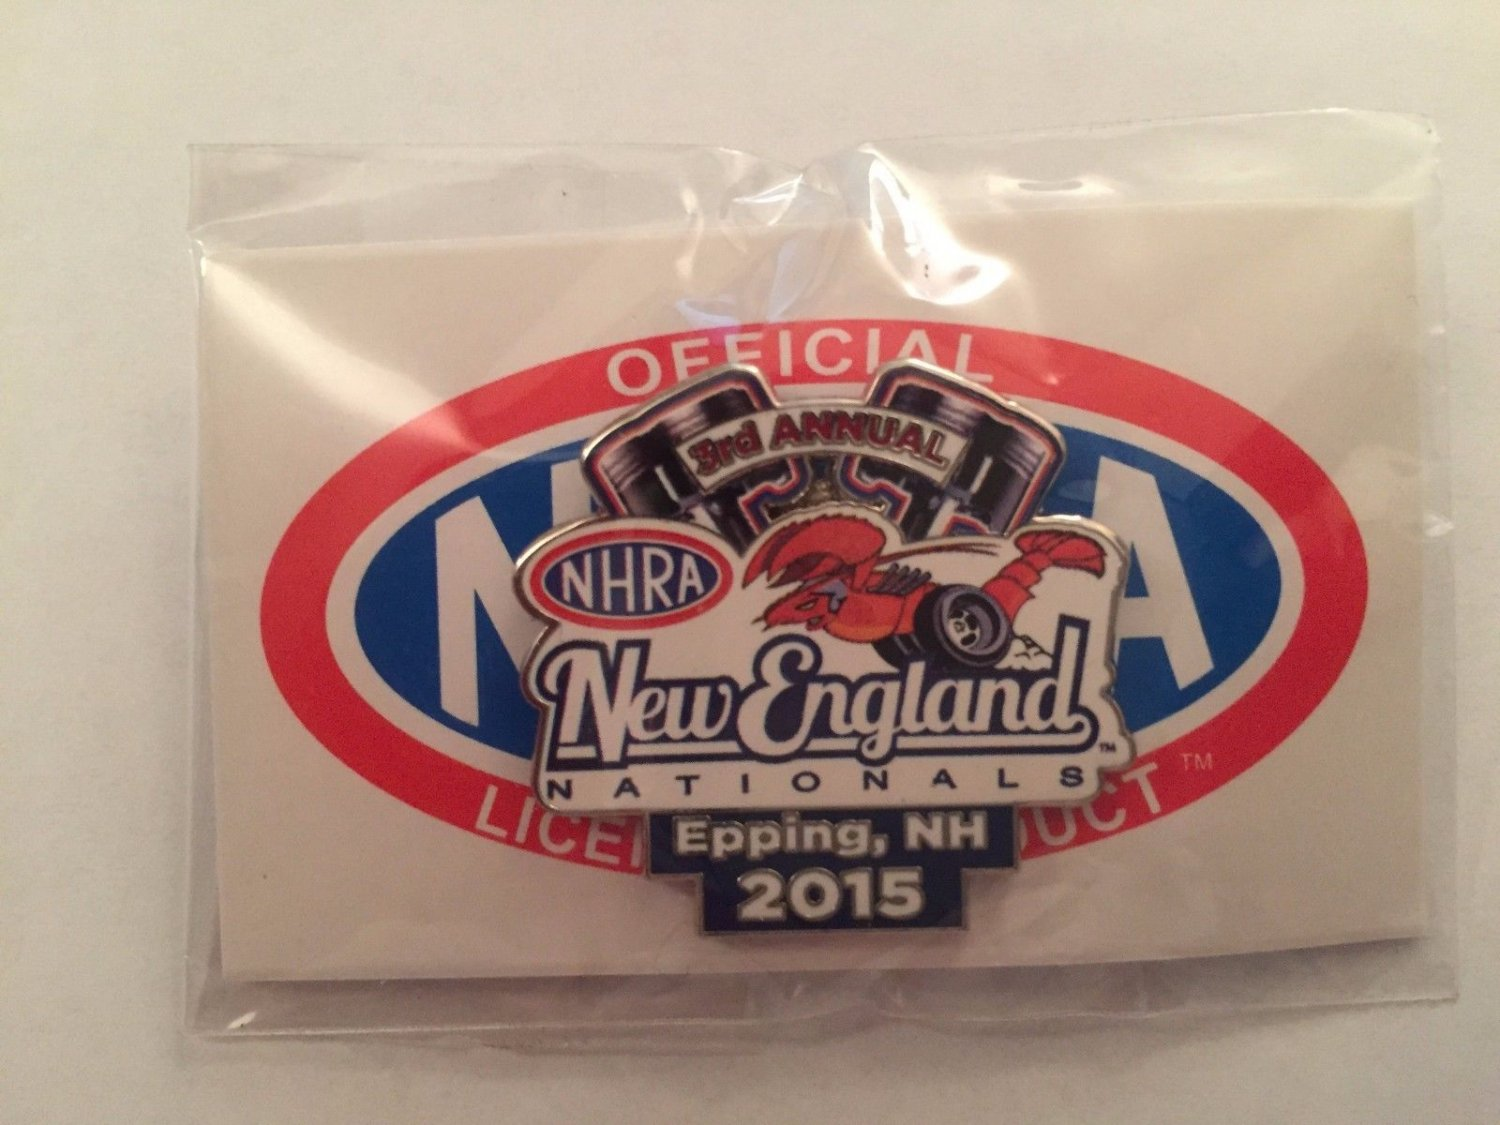 2015 NHRA Event Pin Epping